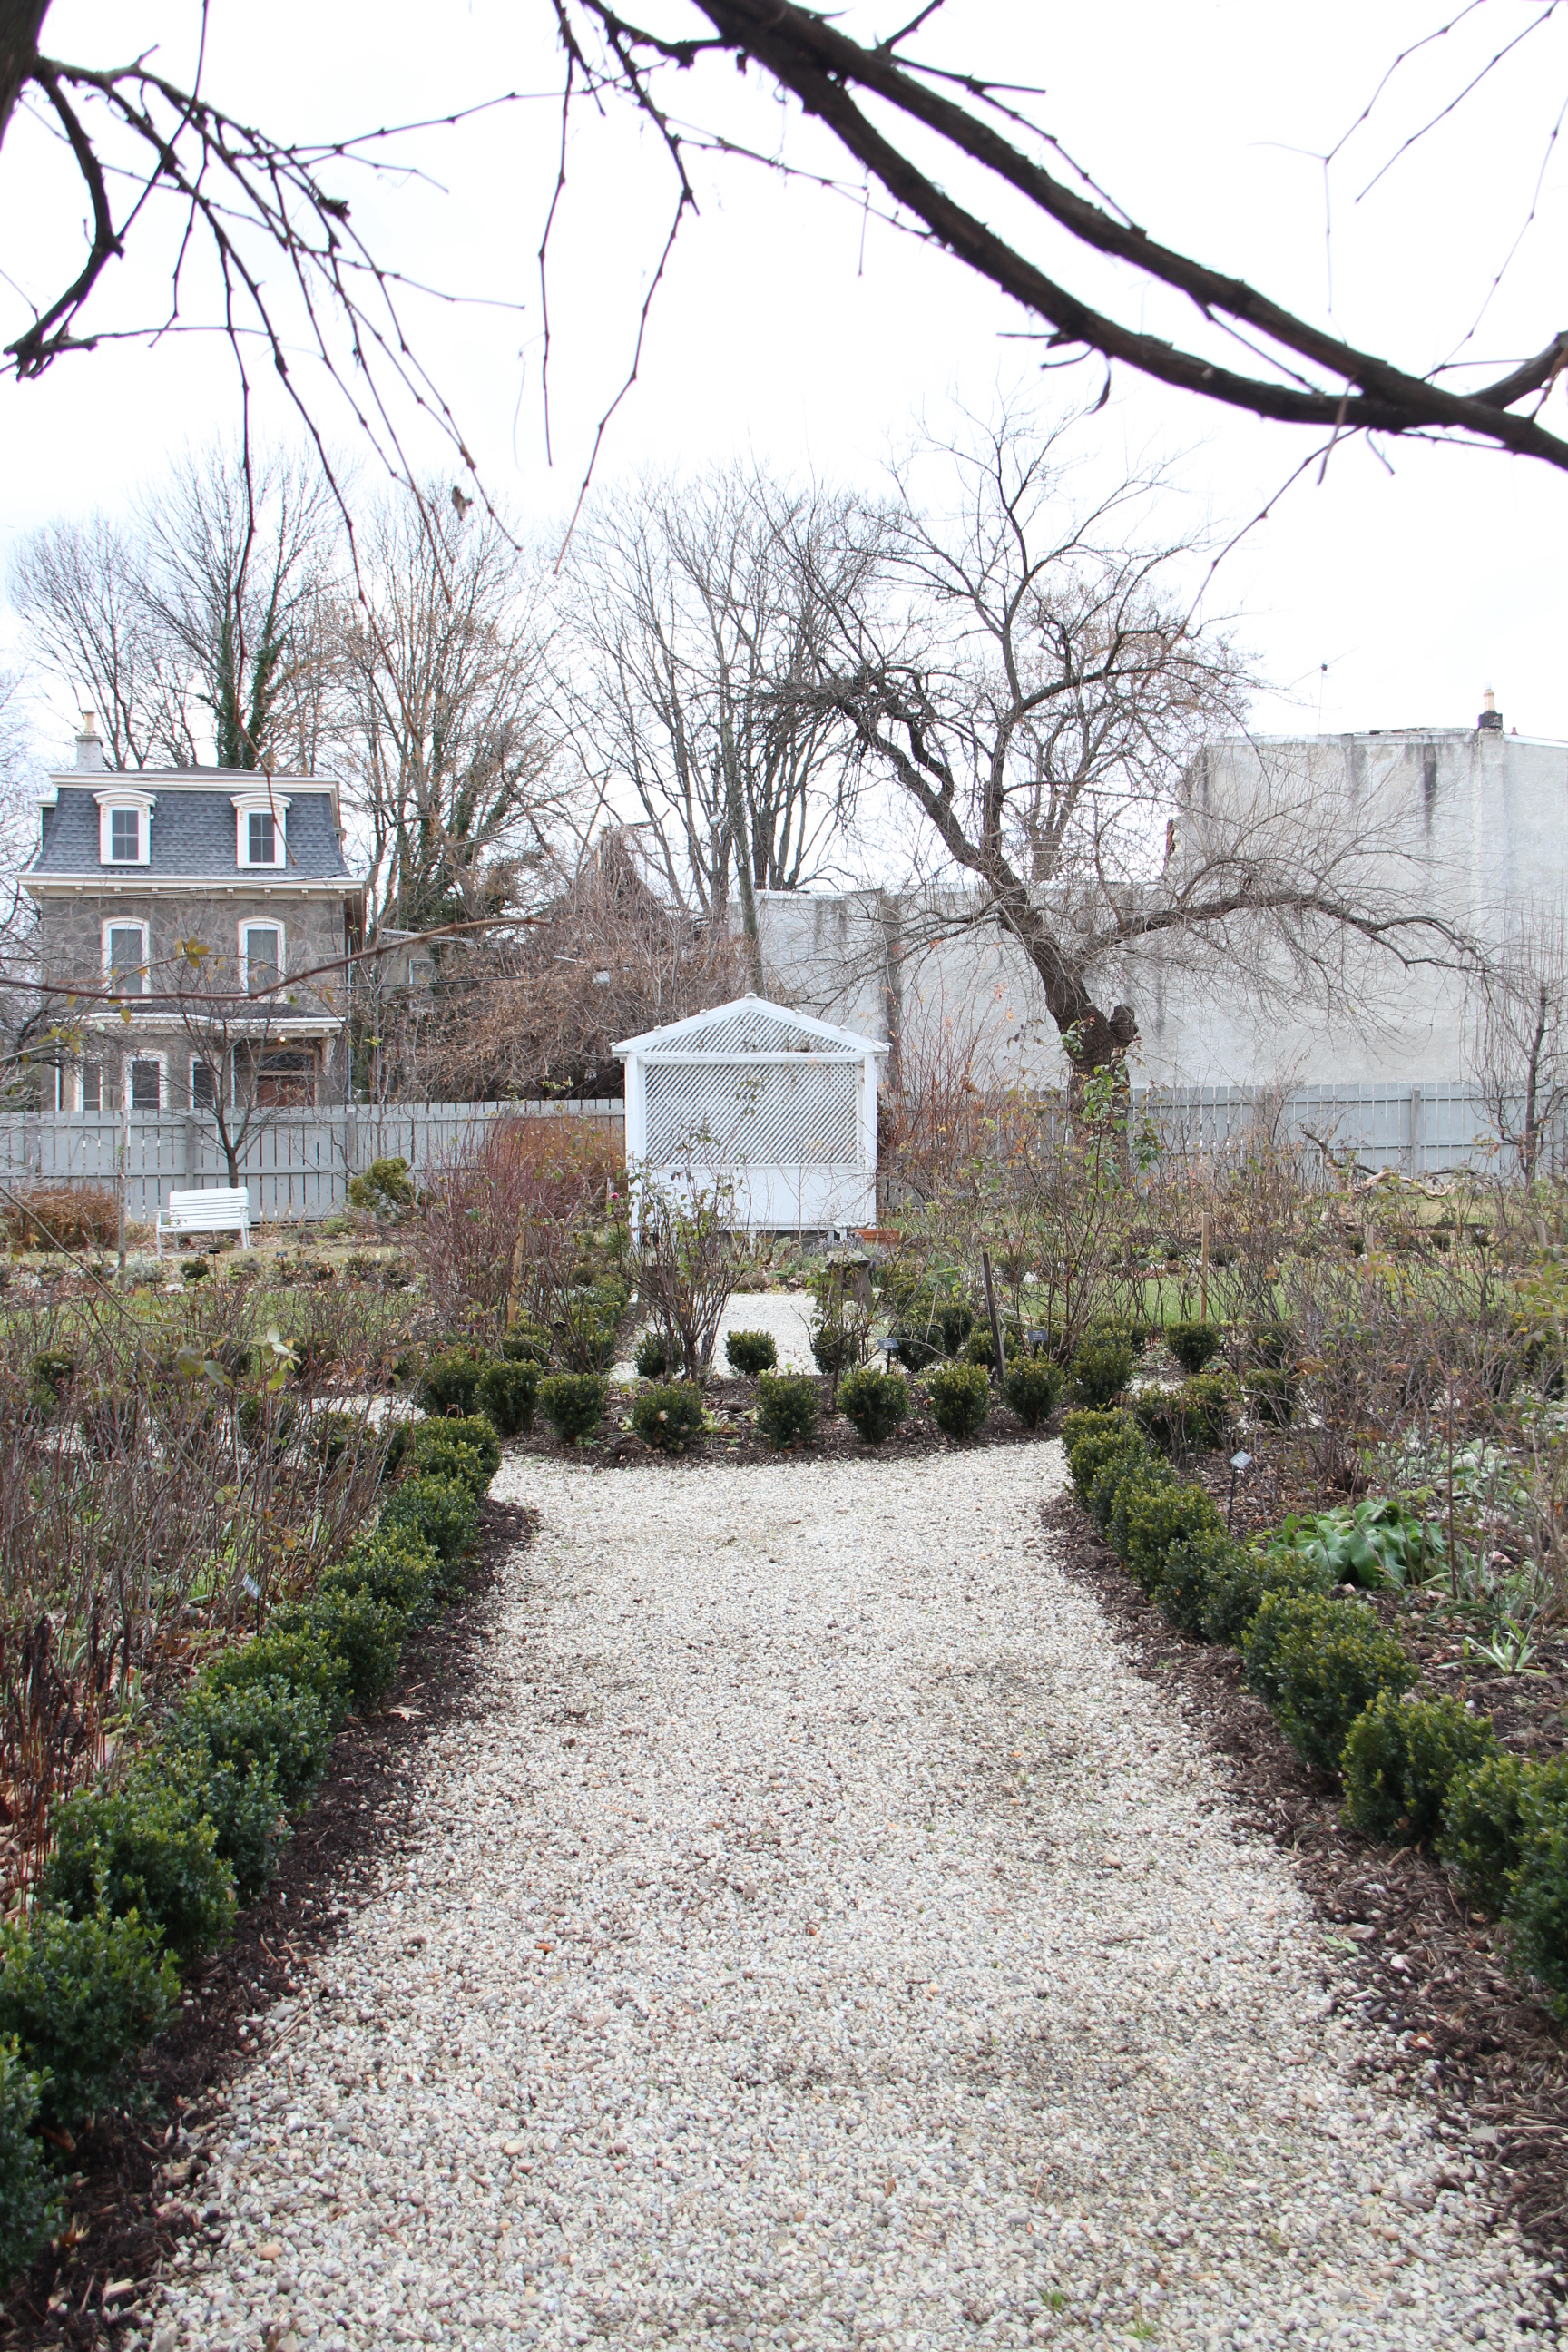 The garden with the freshly planted Little Missy boxwoods, installed in 2019